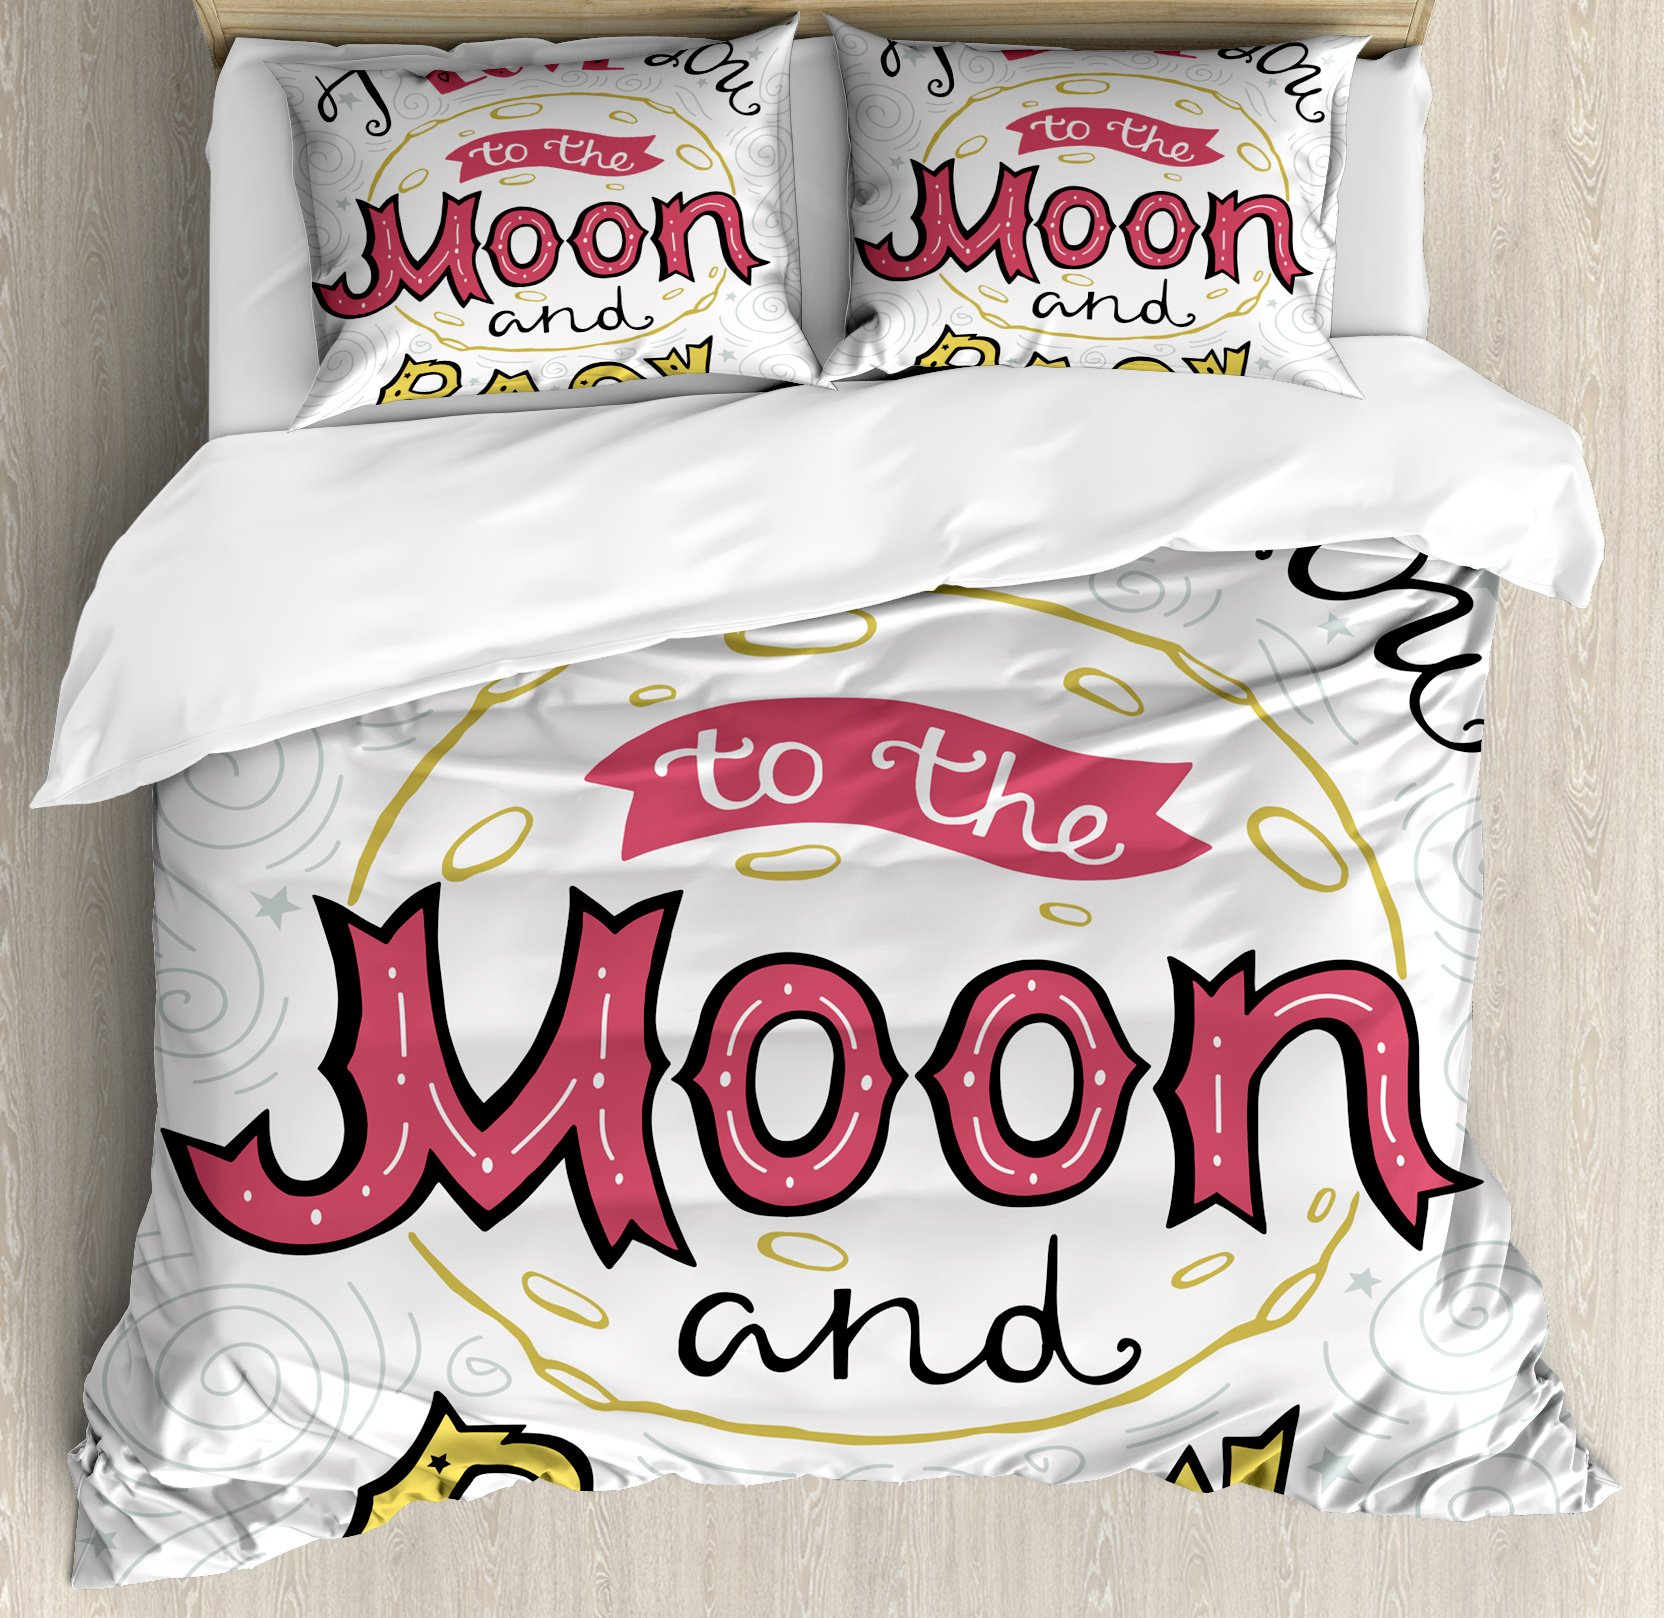 I Love You Queen Size Duvet Cover Set by Ambesonne, I Love You to the Moon and Back Phrase Hand Drawn Friends Couples Design, Decorative 3 Piece Bedding Set with 2 Pillow Shams, Pink Yellow Pearl